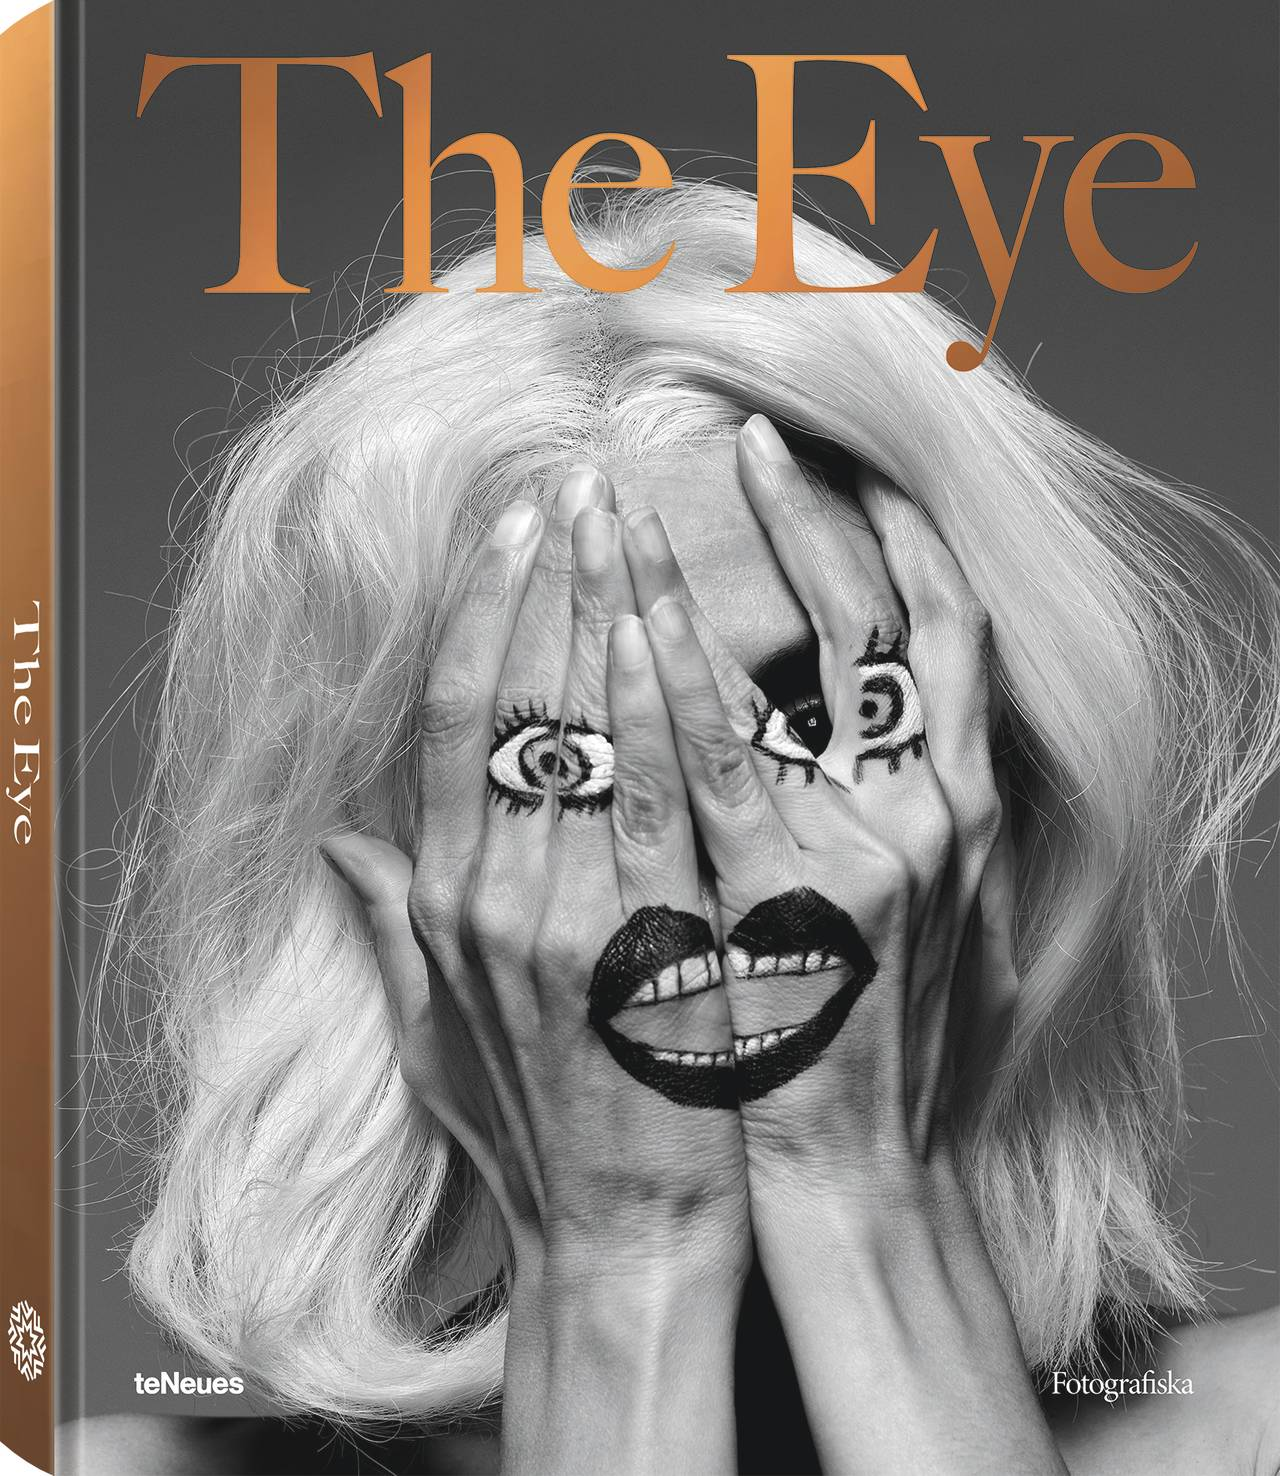 © The Eye by Fotografiska, published by teNeues, www.teneues.com, www.fotografiska.com, Inez & Vinoodh, Joan via Inez, Theatergroep Mugmetdegoudentand, 2005, Photo © Inez Van Lamsweerde and Vinoodh Matadin. Courtesy Gagosian Gallery